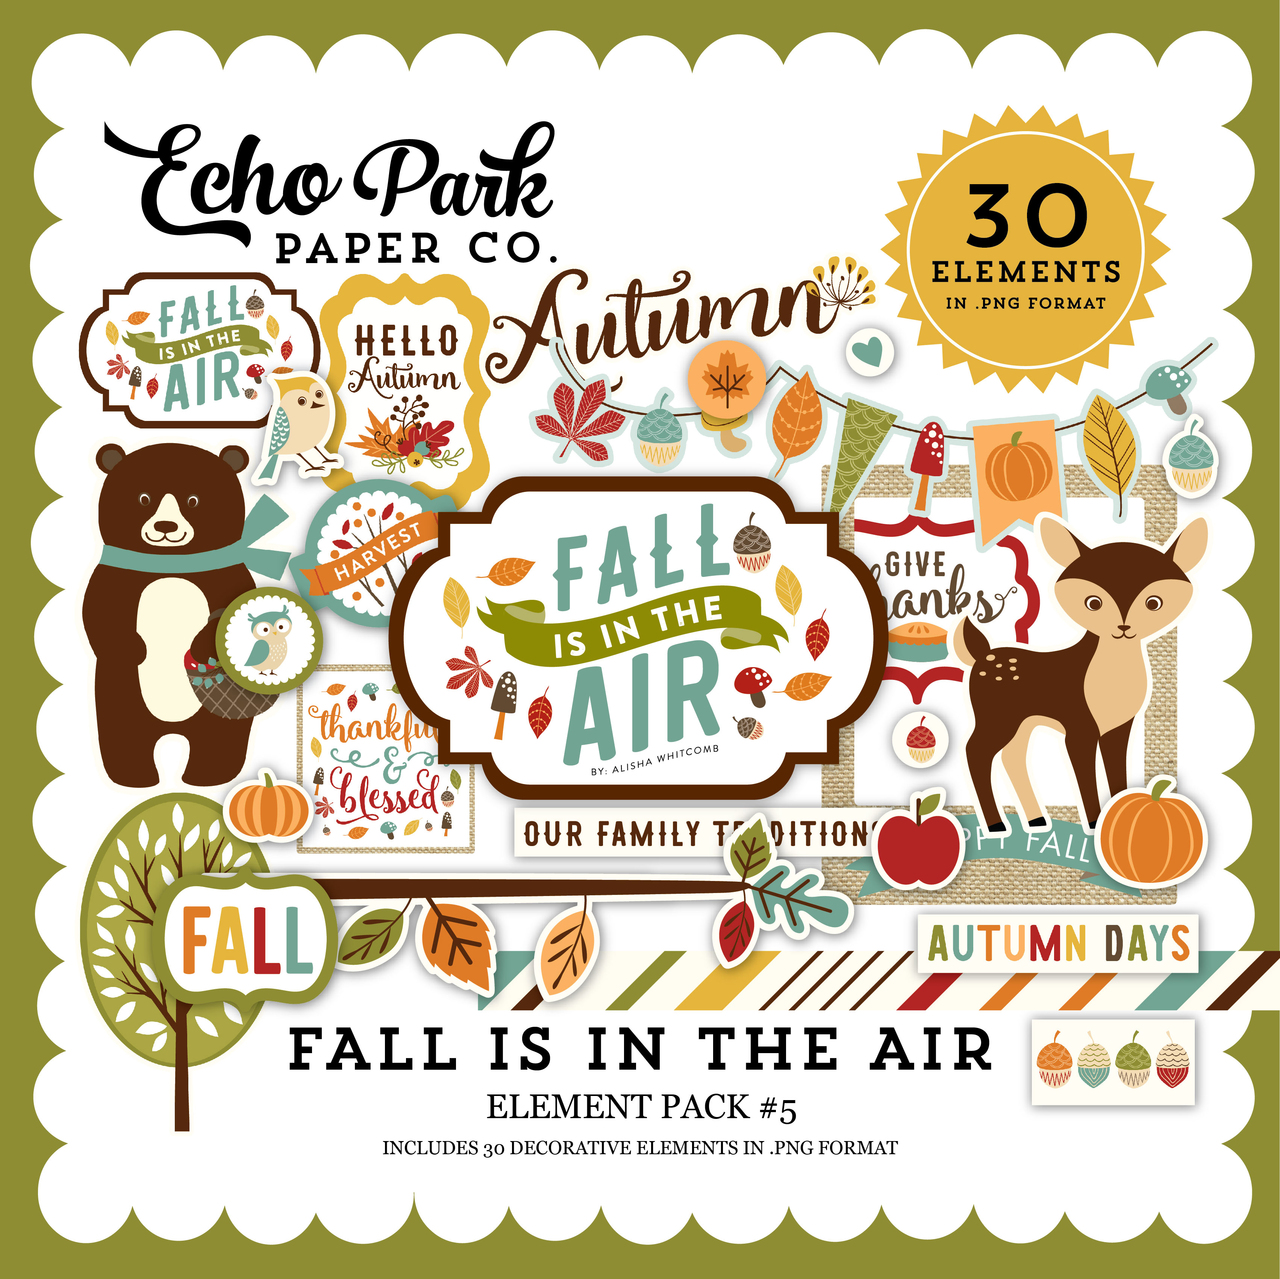 Fall is in the Air Element Pack 5